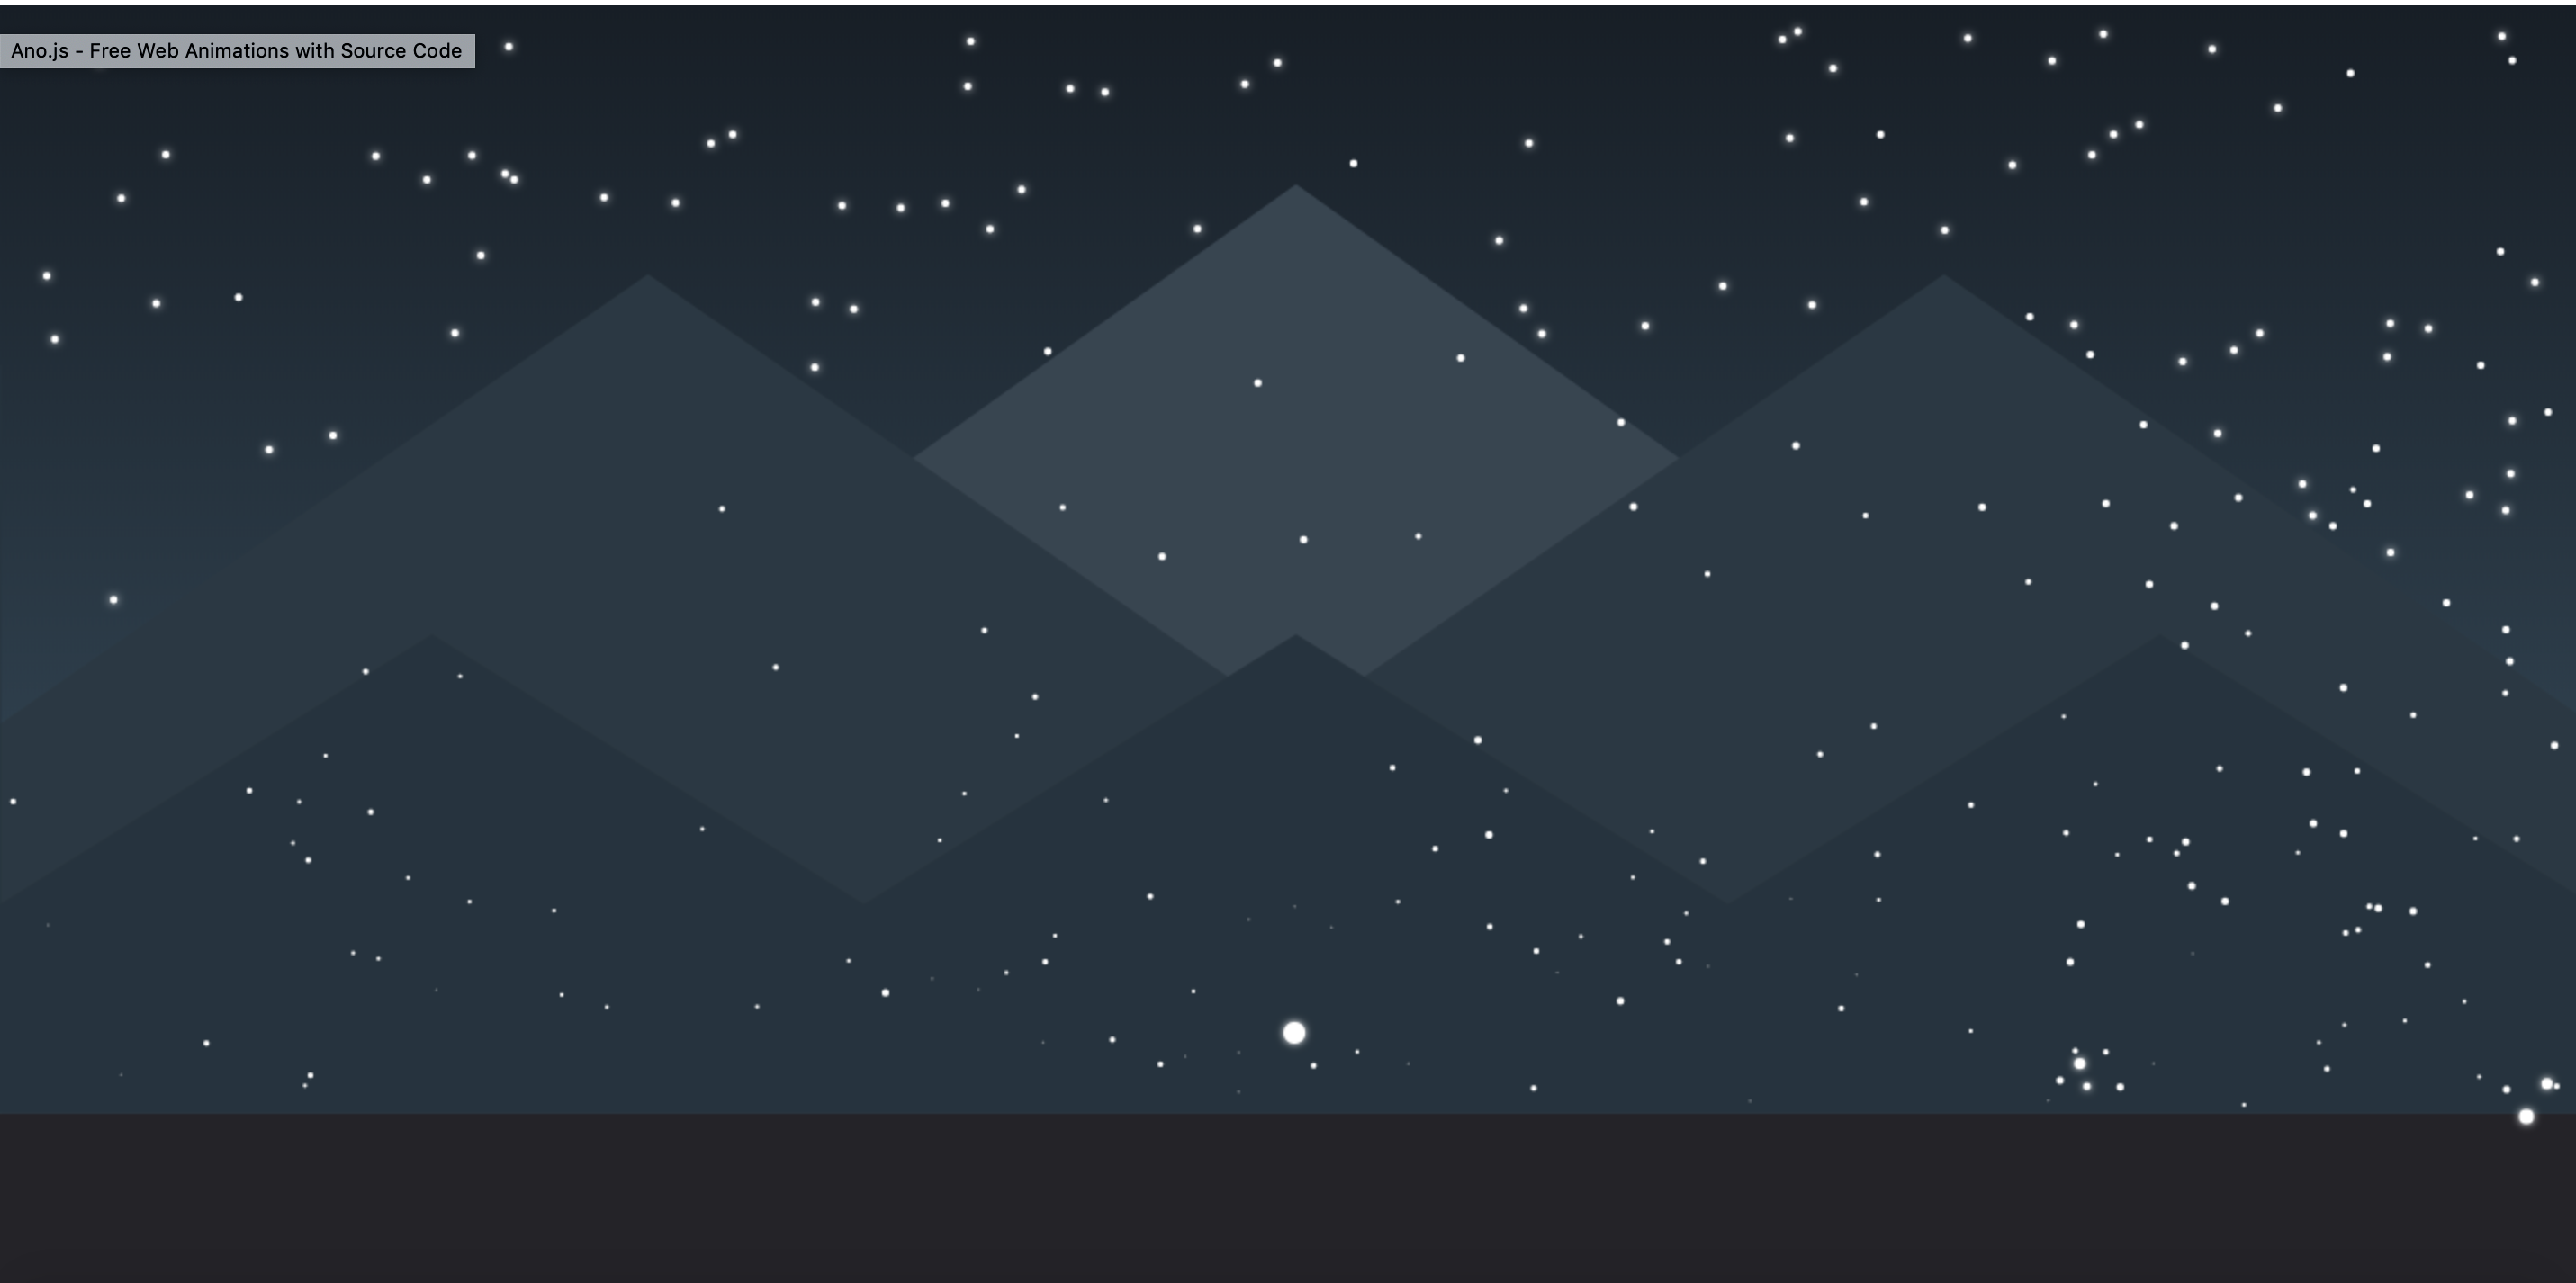 Ano.js animation demo image